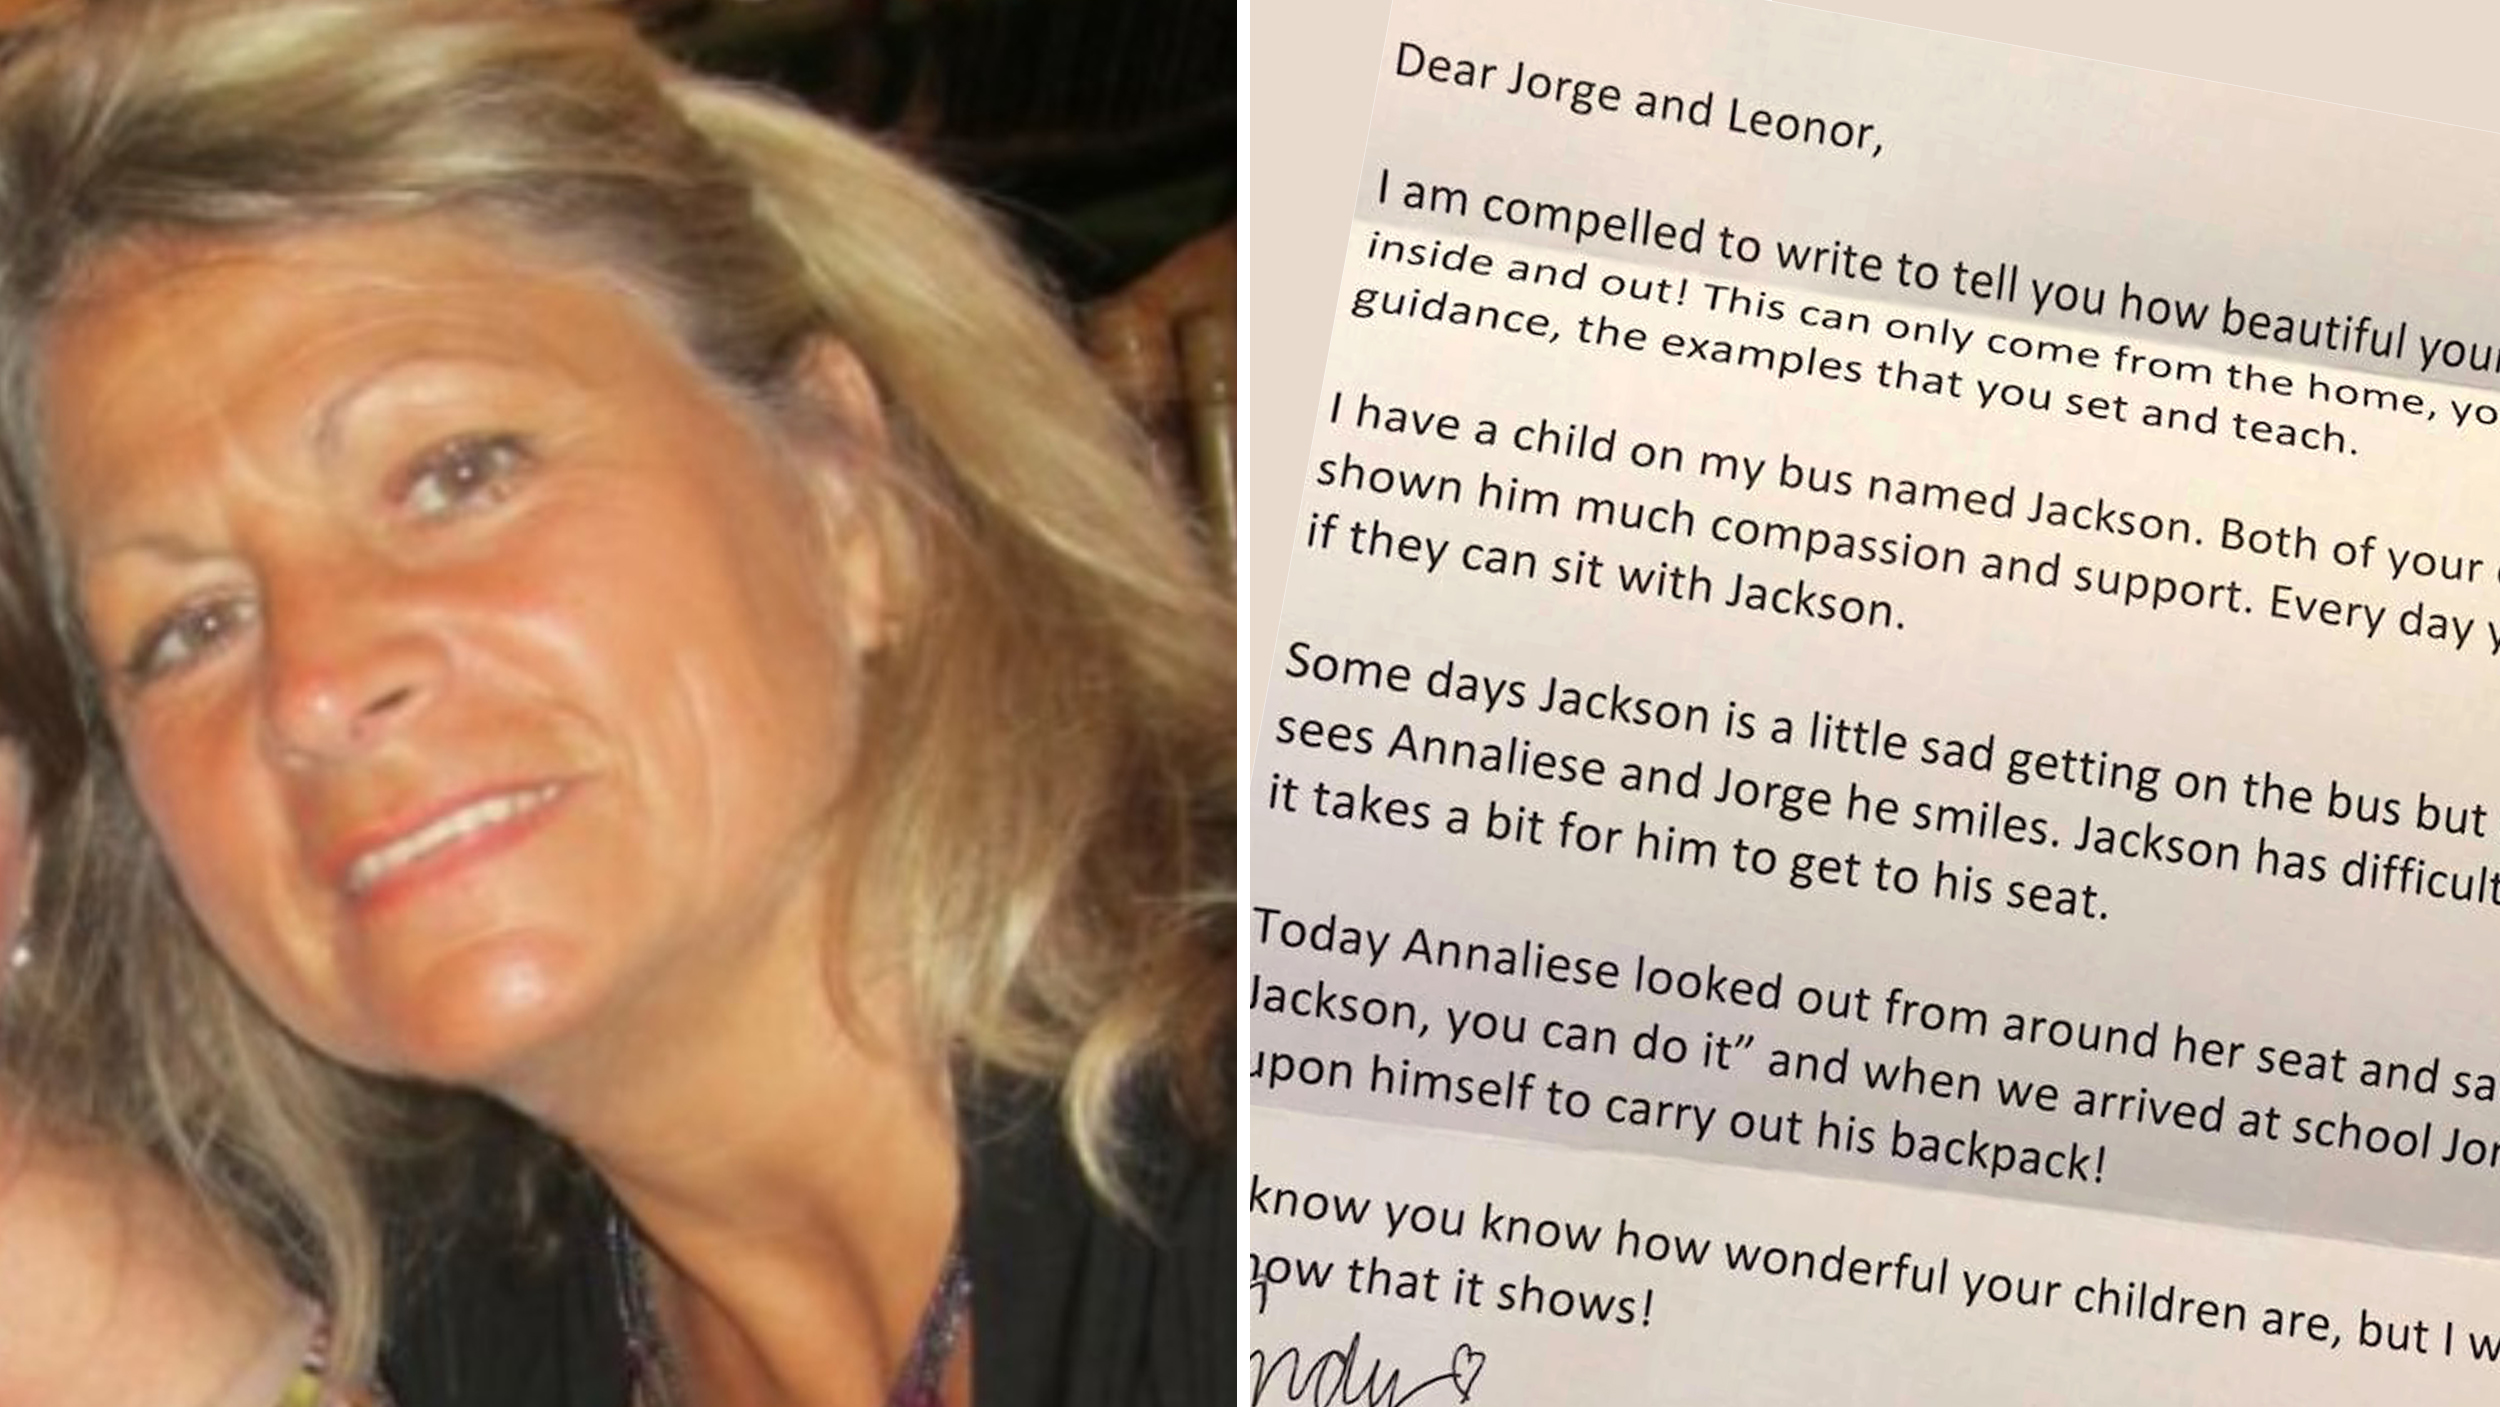 Bus driver writes note to parents: 'Your children are beautiful inside and out'